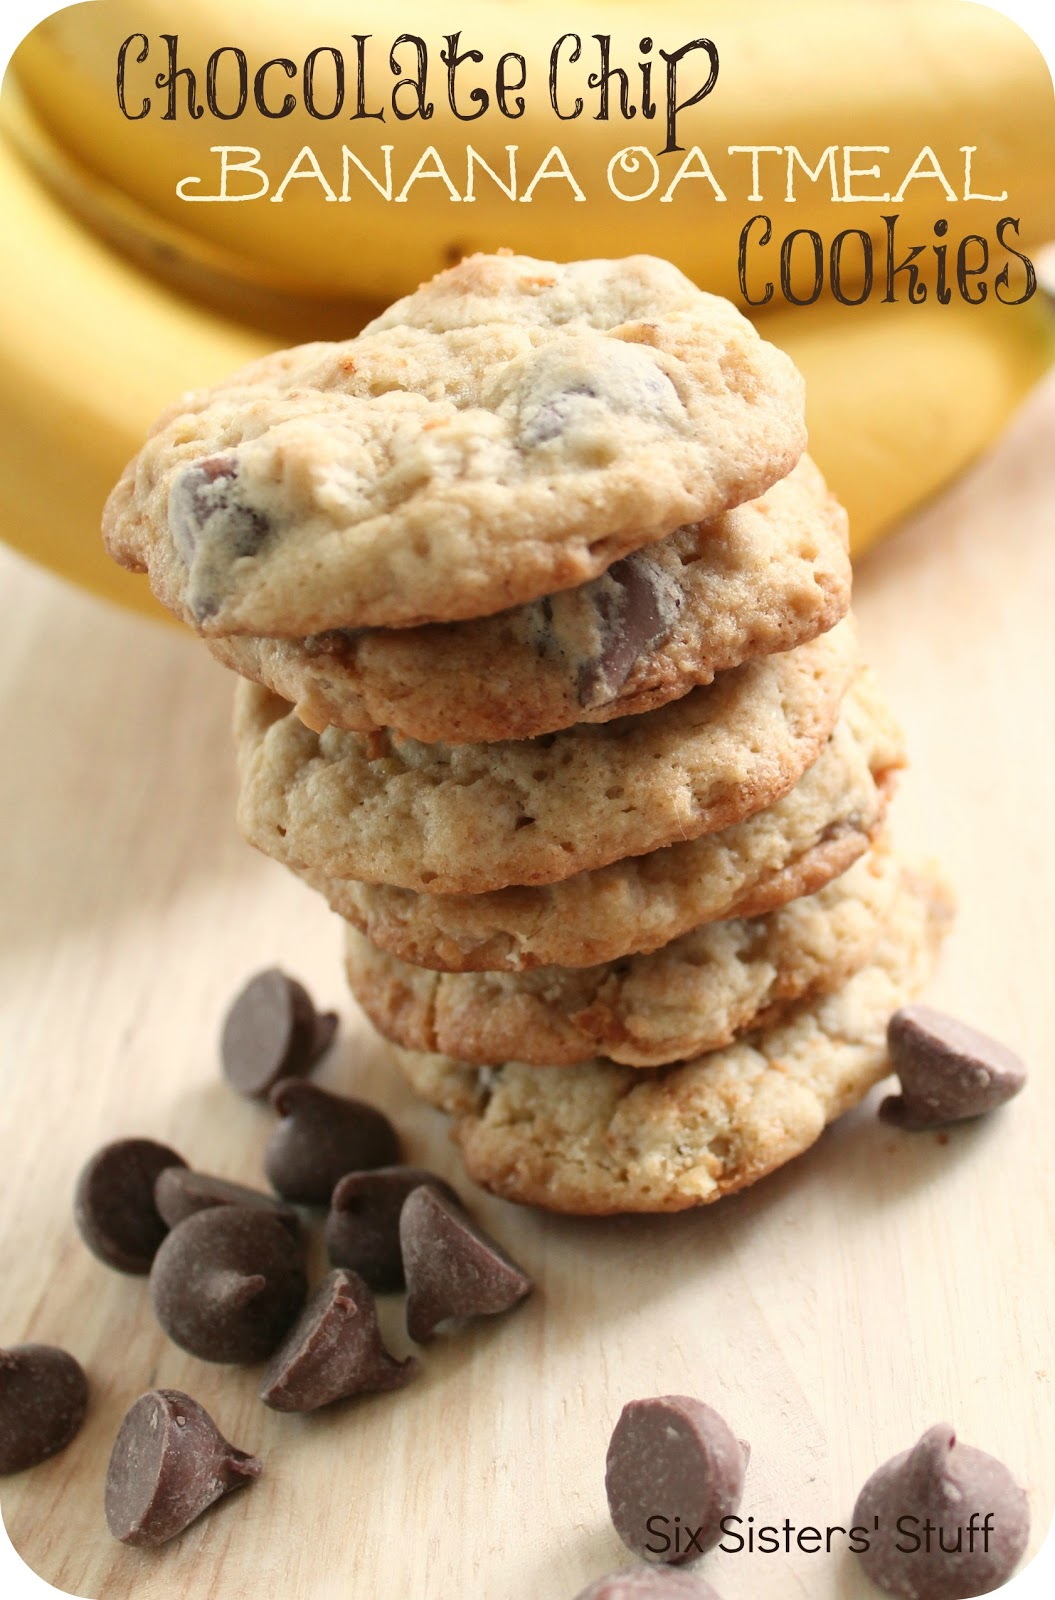 Chocolate Chip Banana Oatmeal Cookies Recipe | Six Sisters' Stuff